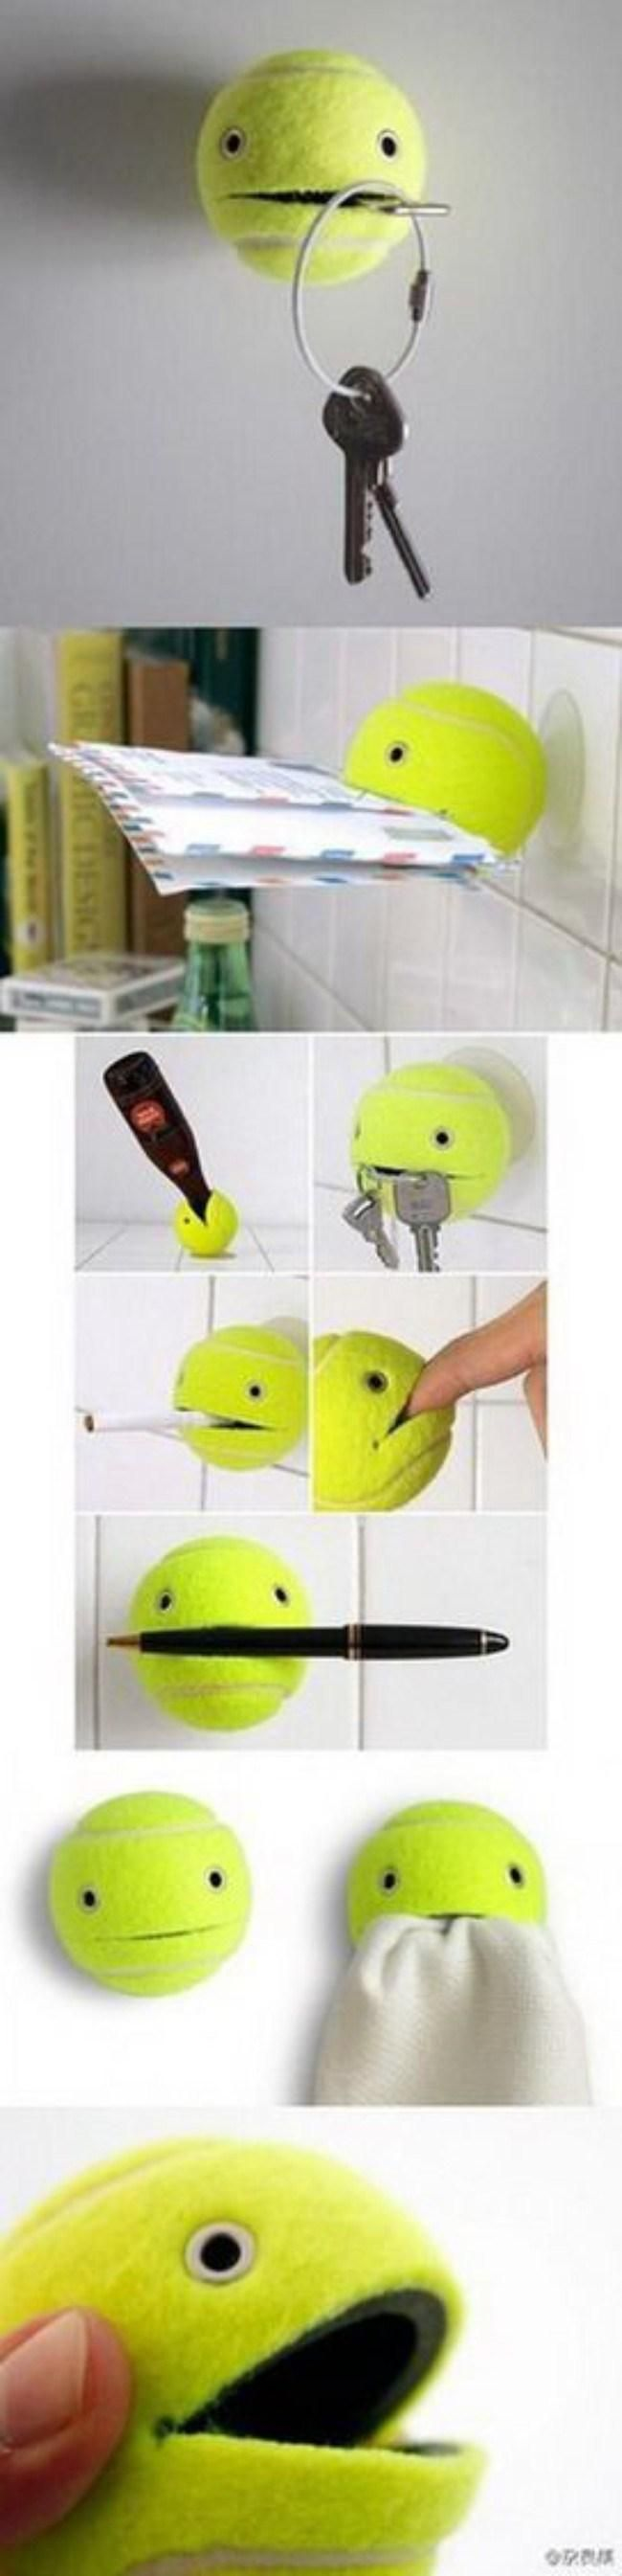 I like what they've done with that tennis ball..